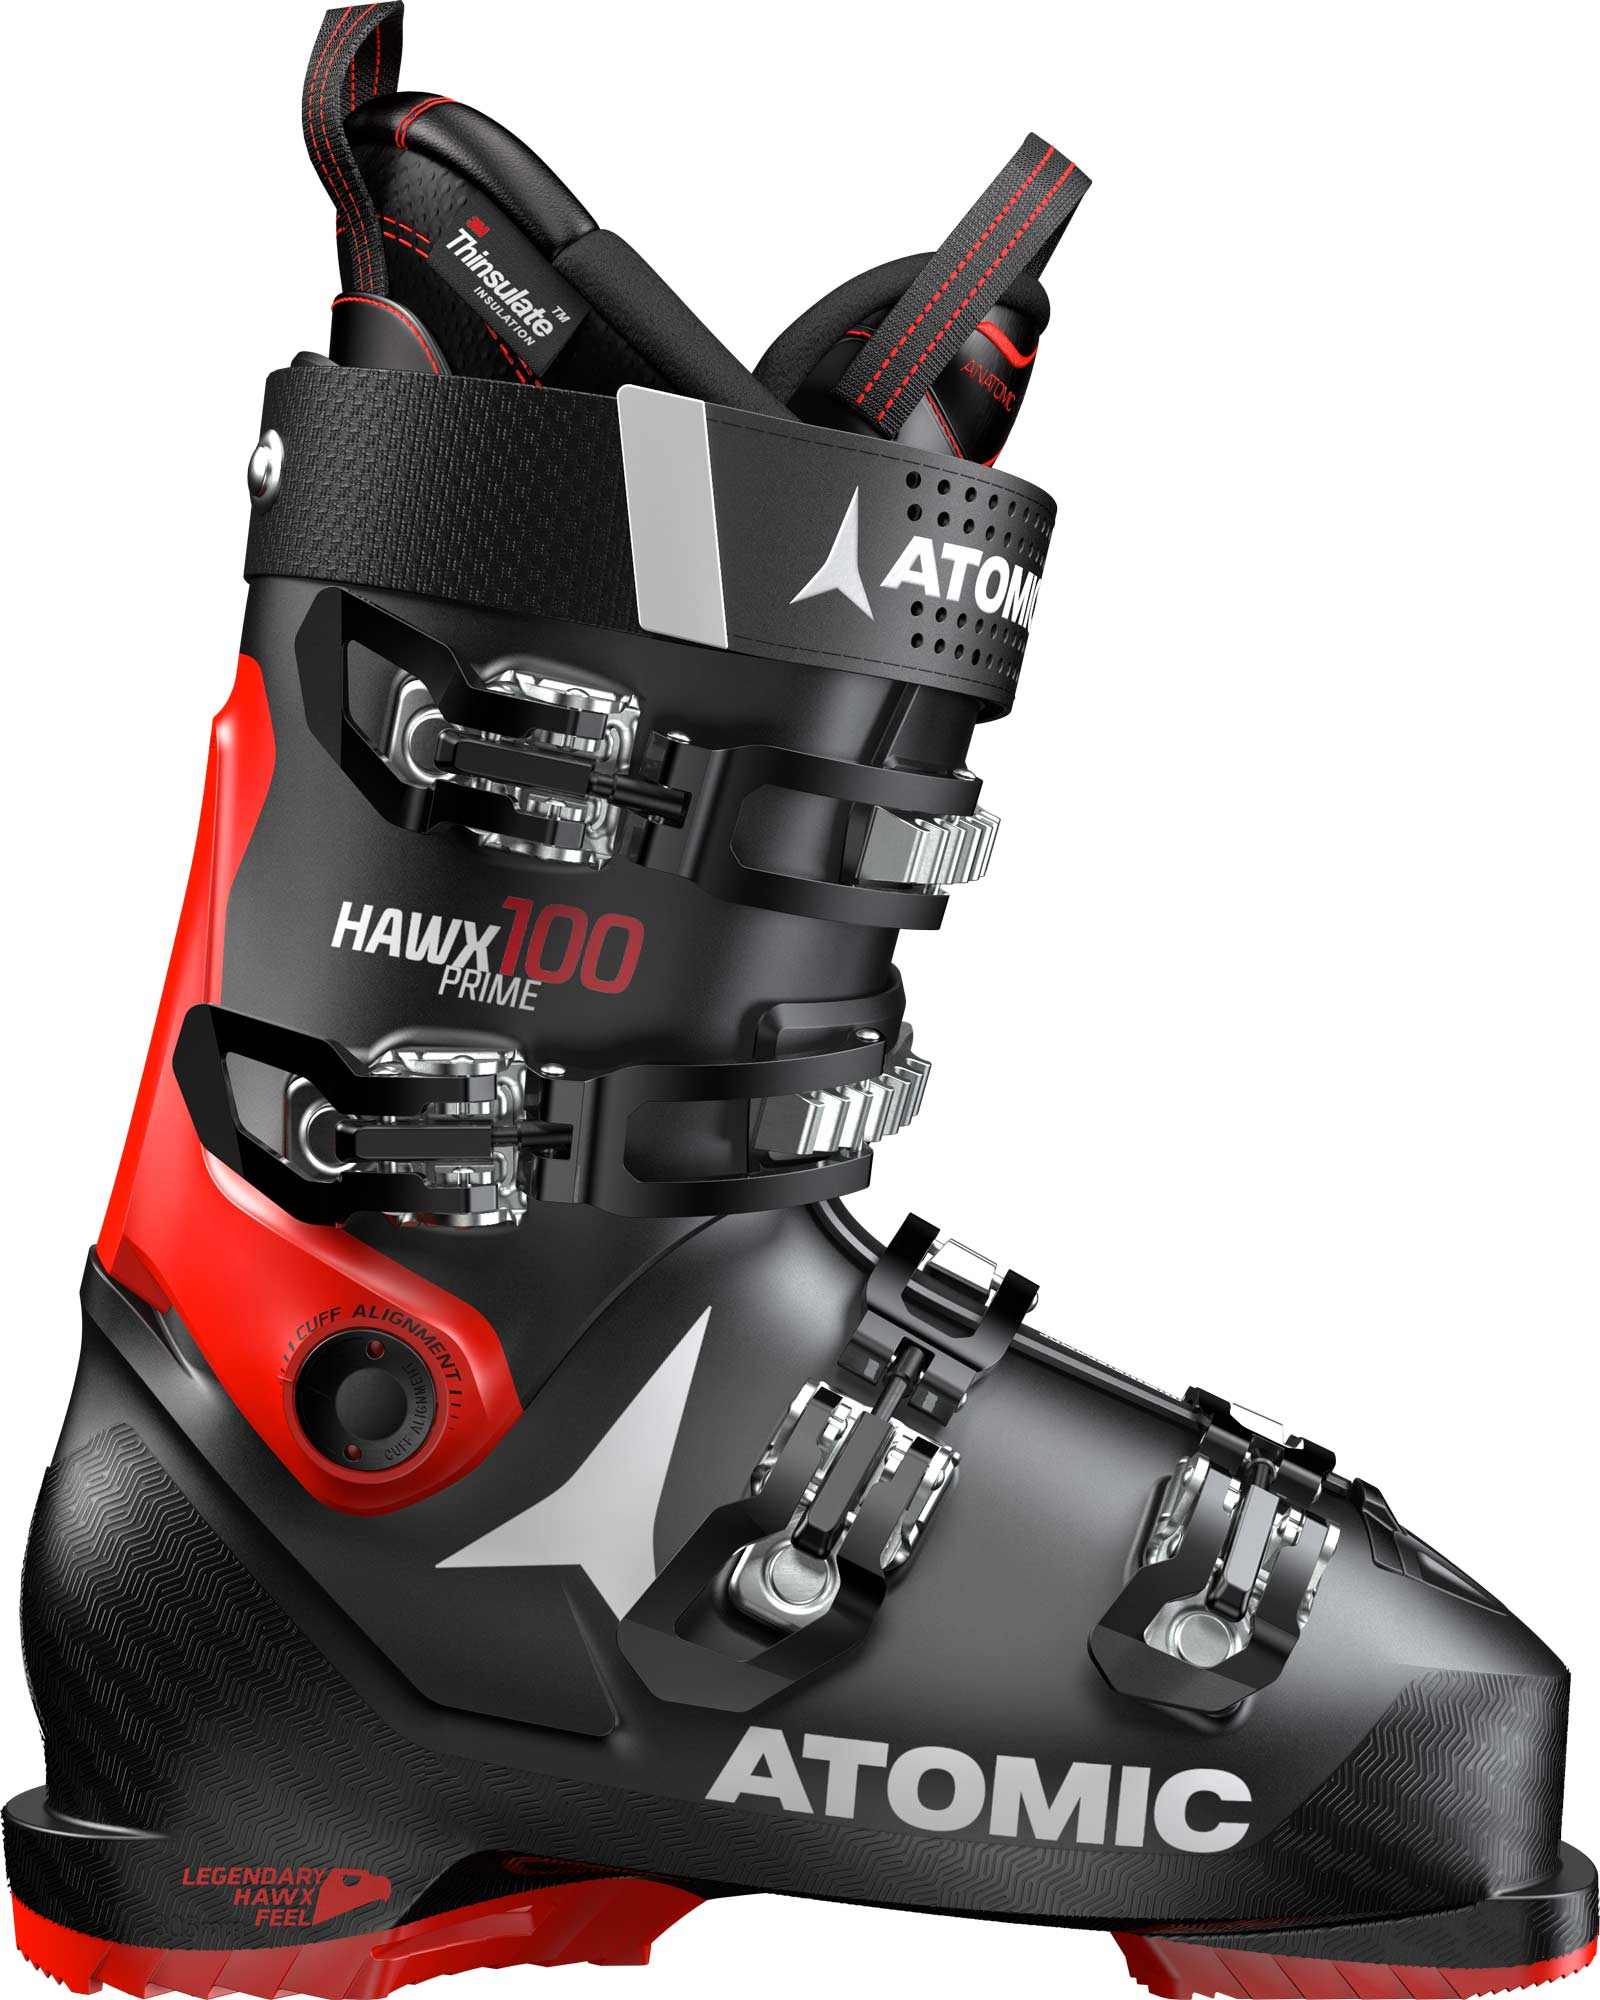 Atomic Hawx Prime 100 - Black / Red (2020)